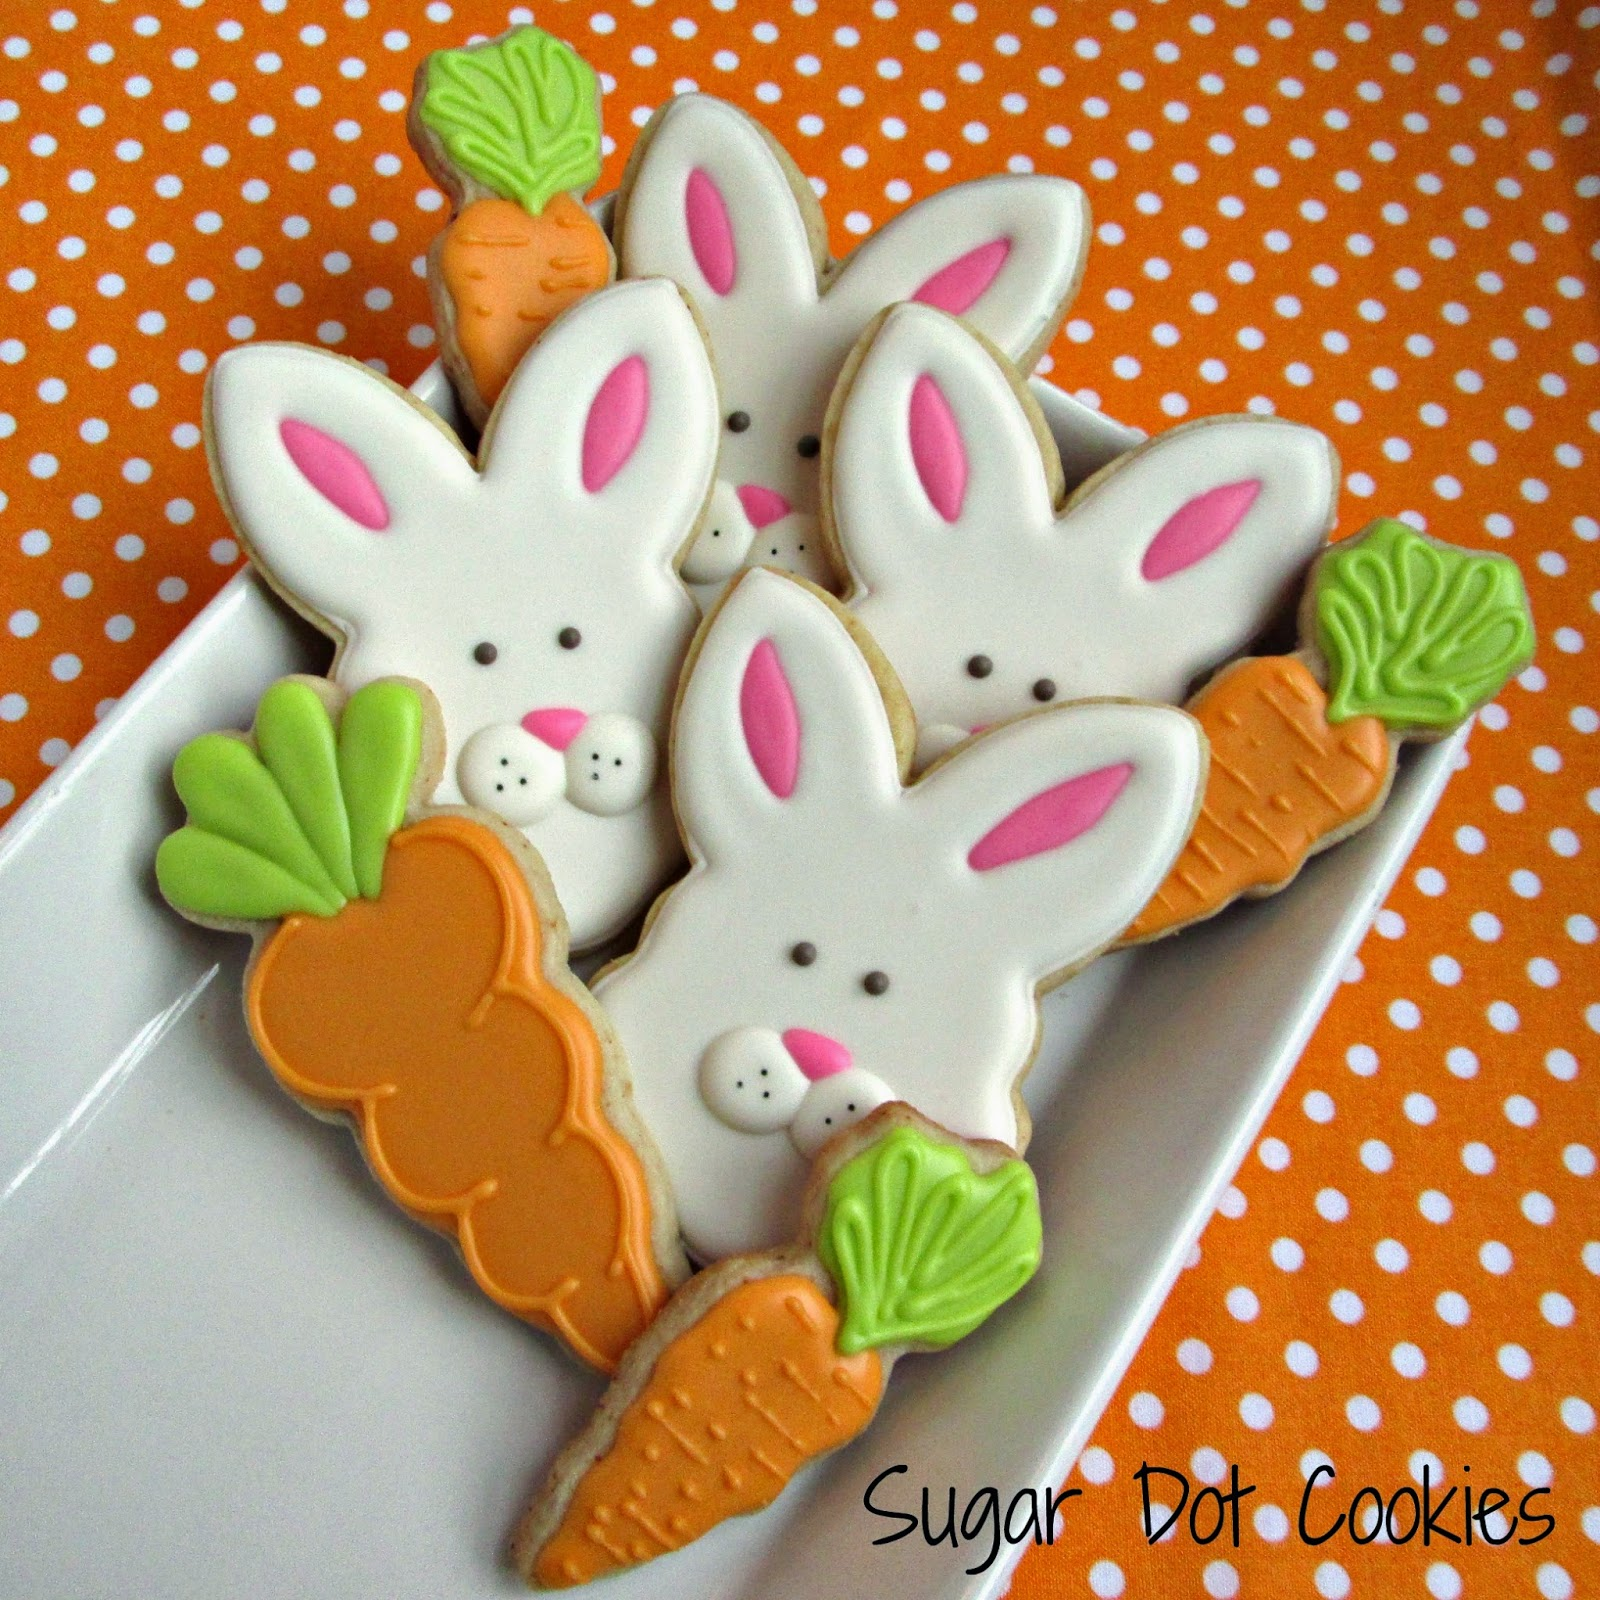 Ryland: sugar+cookies+decorated+royal+icing+bunny+carrot+easter ...